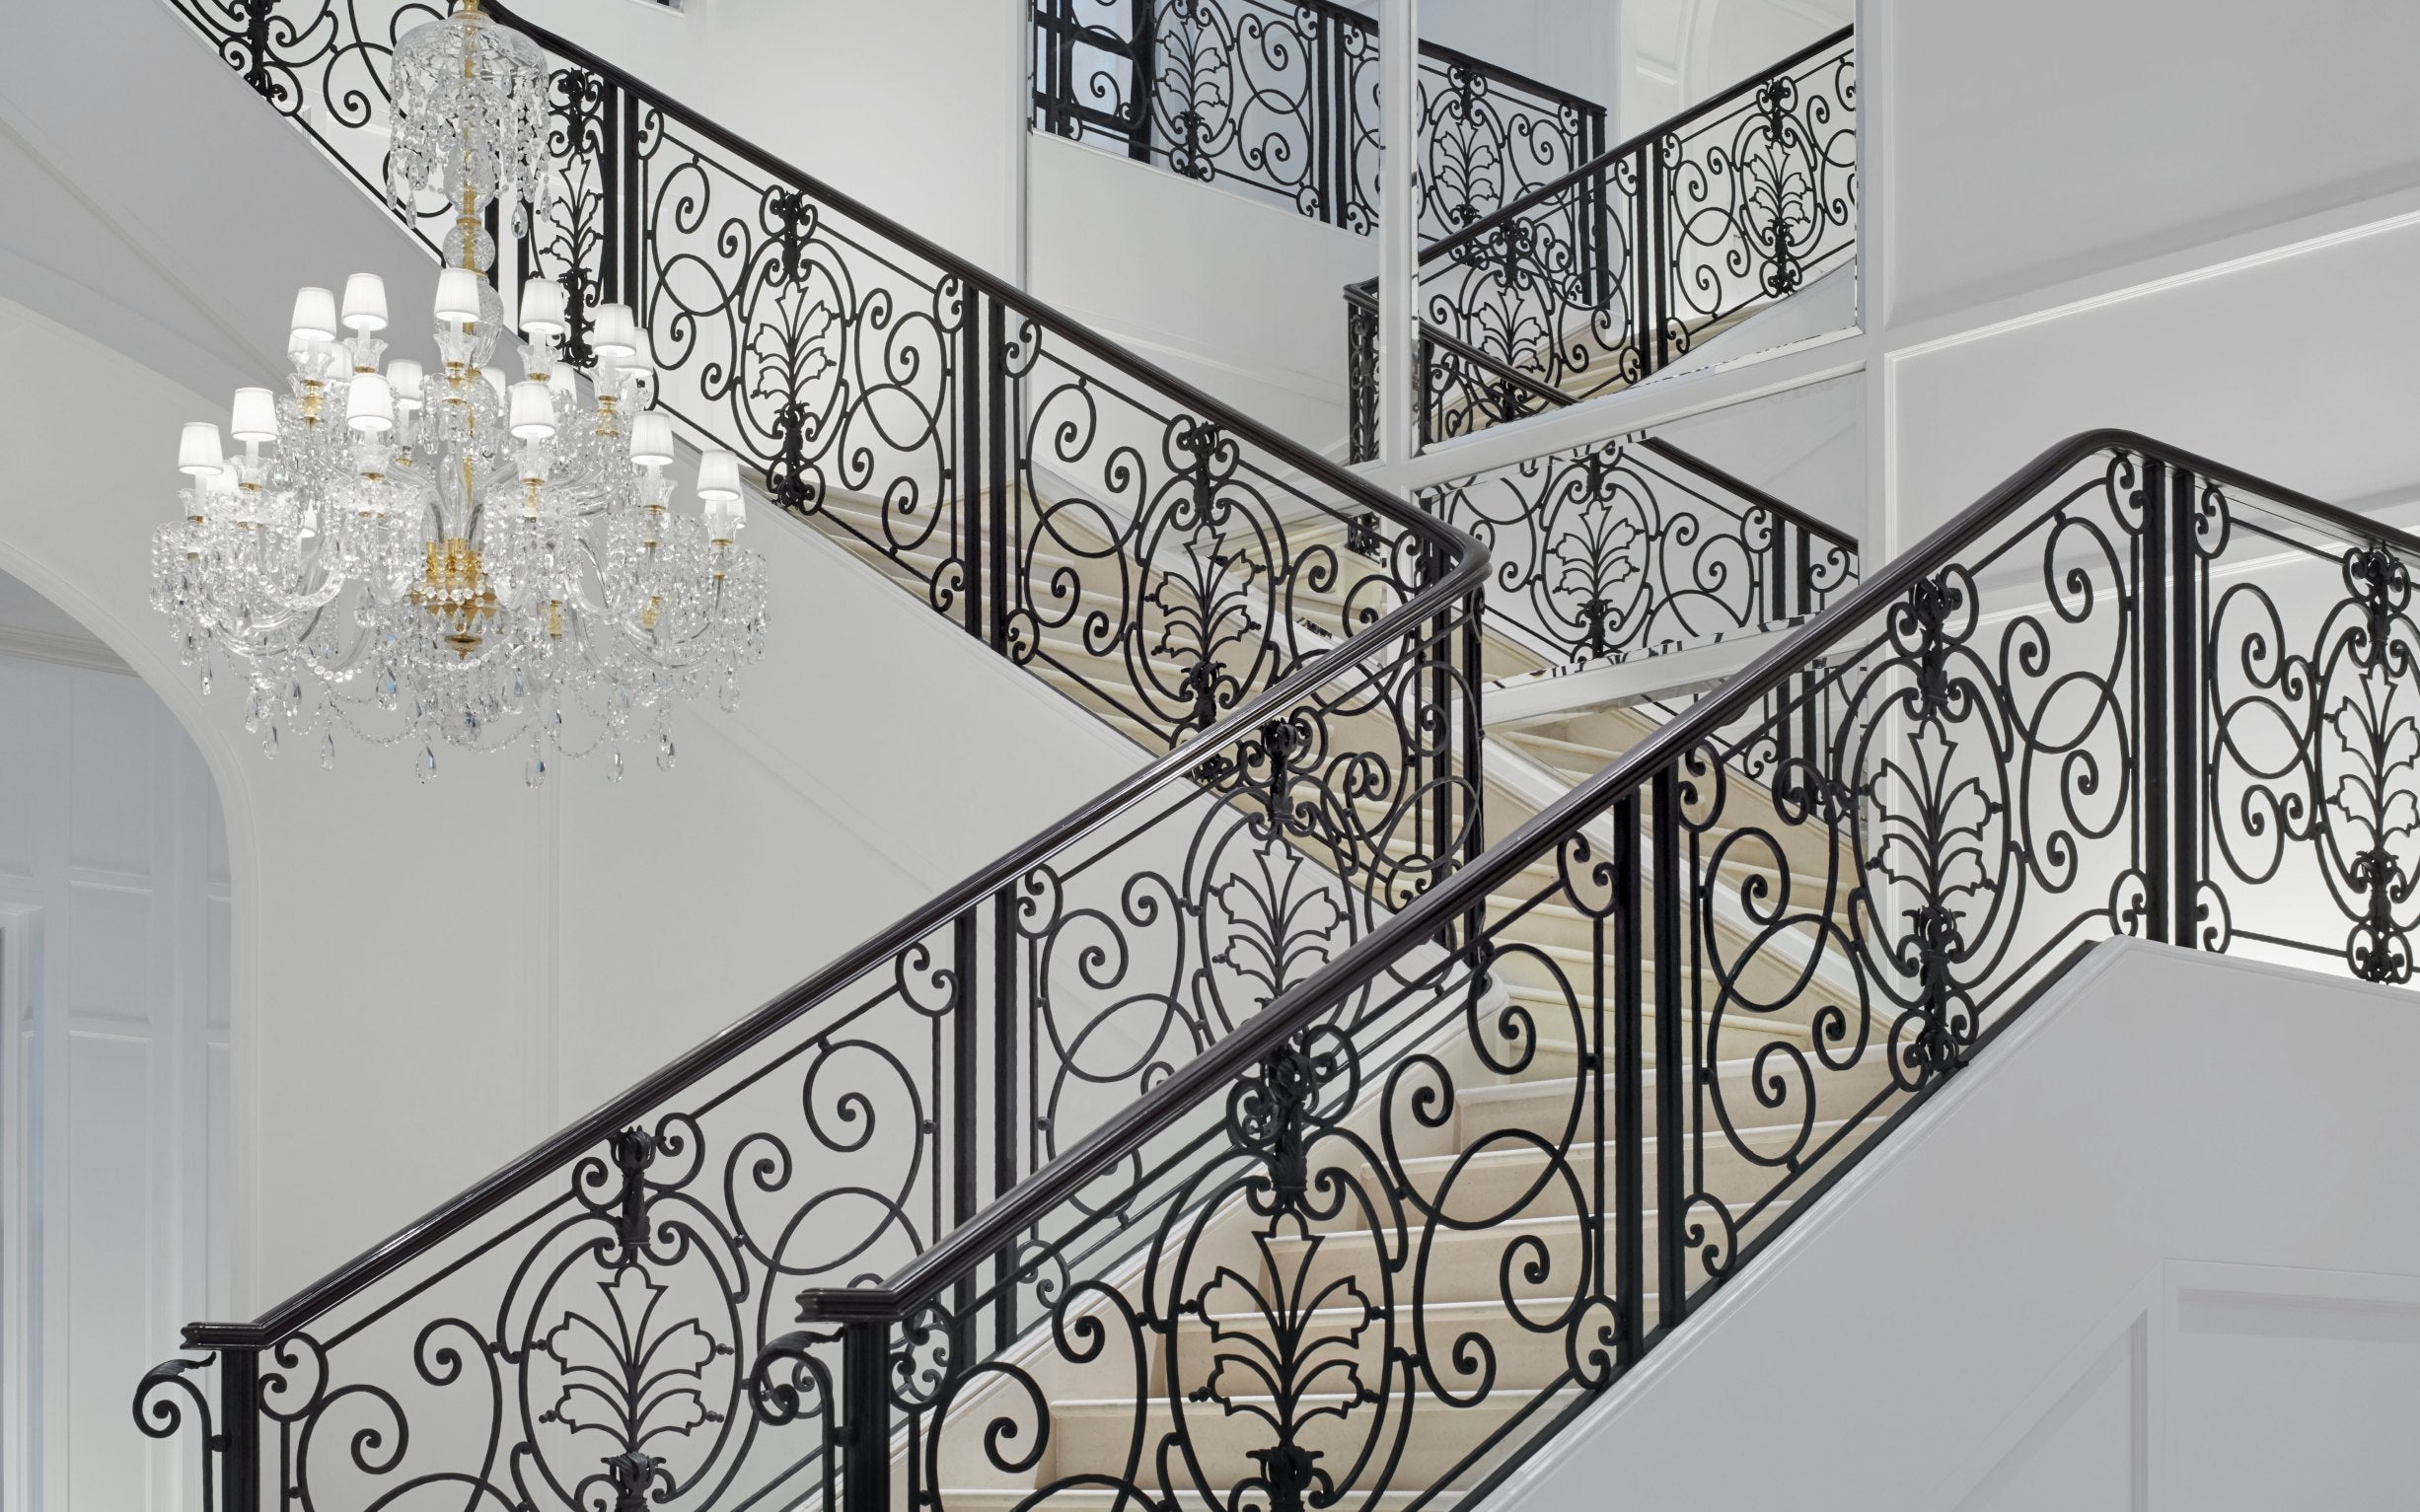 Beautiful Staircase Ideas For Your Home - quarter-turn staircase - LuxDeco.com Style Guide